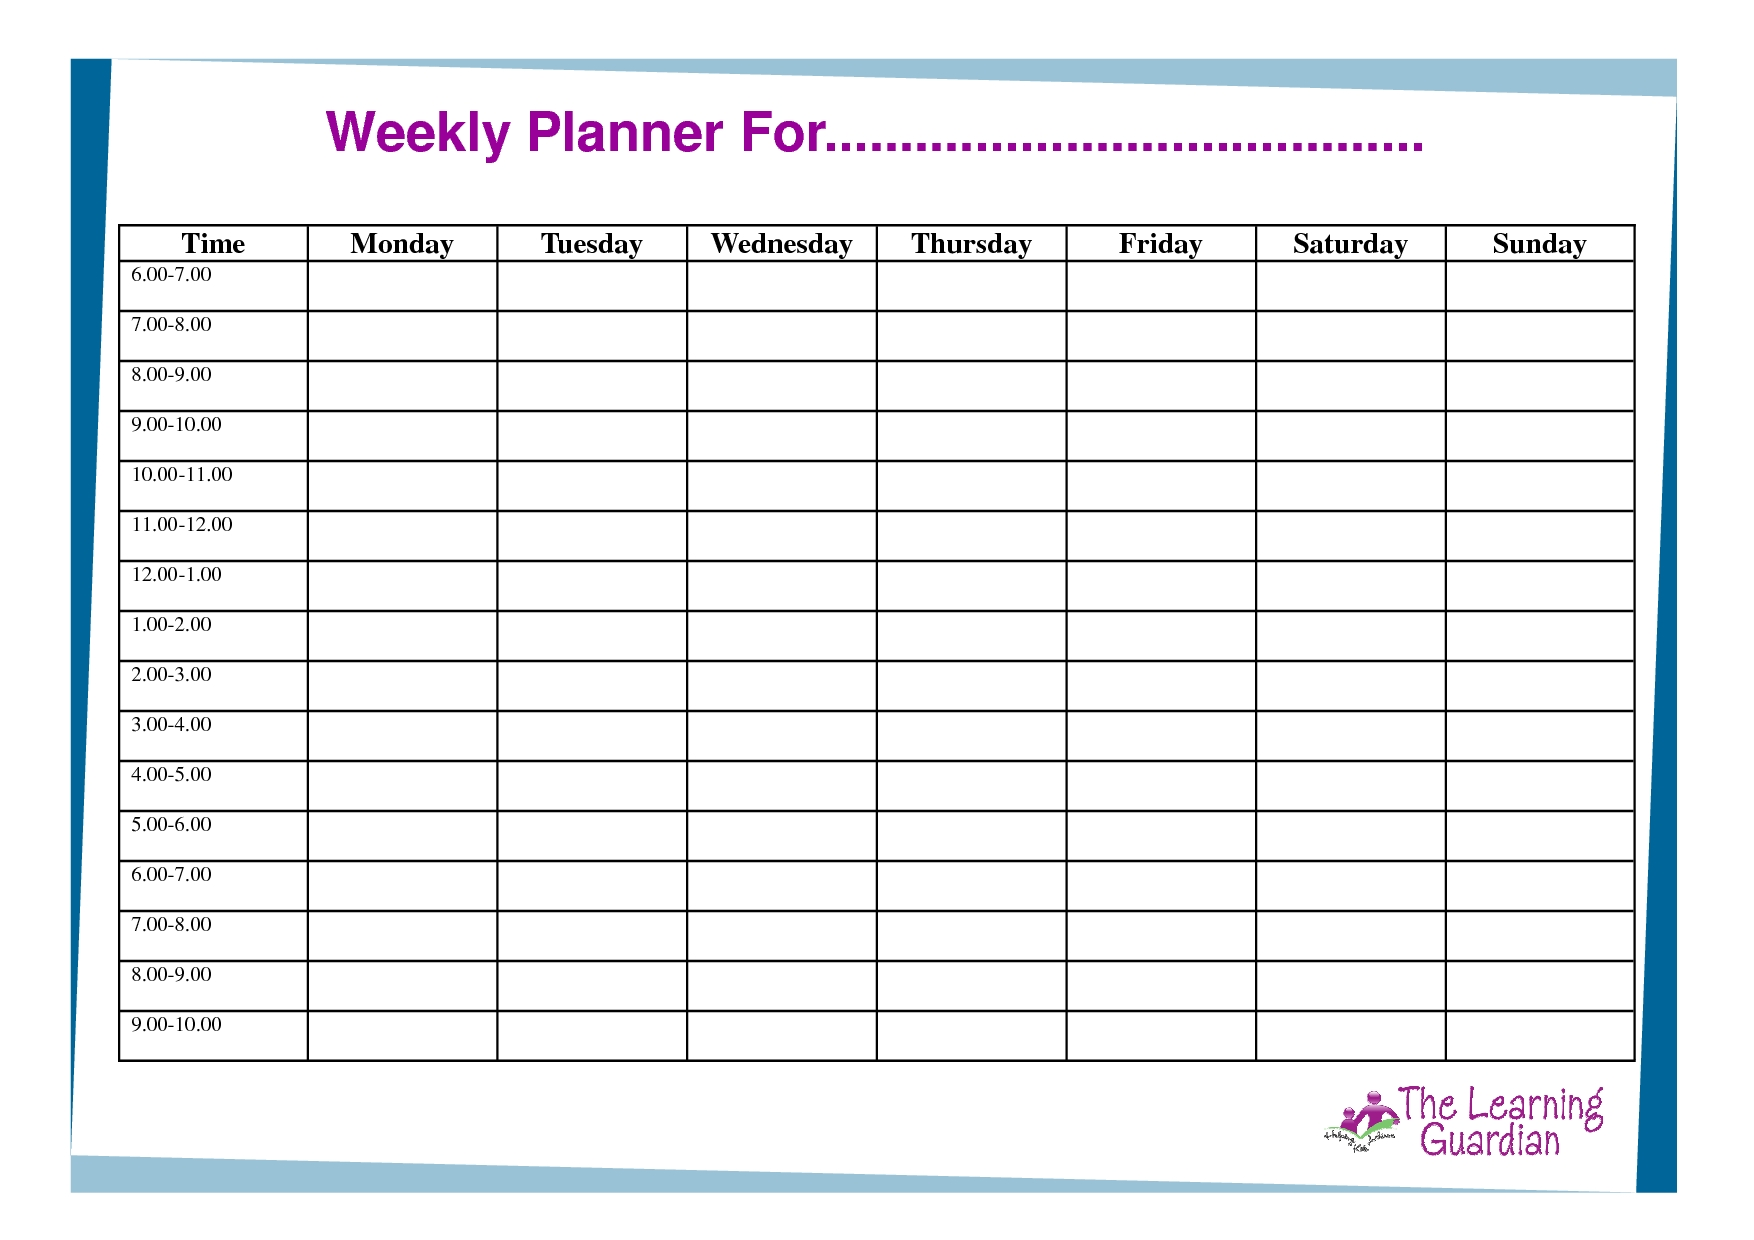 Free Printable Weekly Calendar Templates | Weekly Planner For Time with Free Printable Weekly Planner Calendar Template